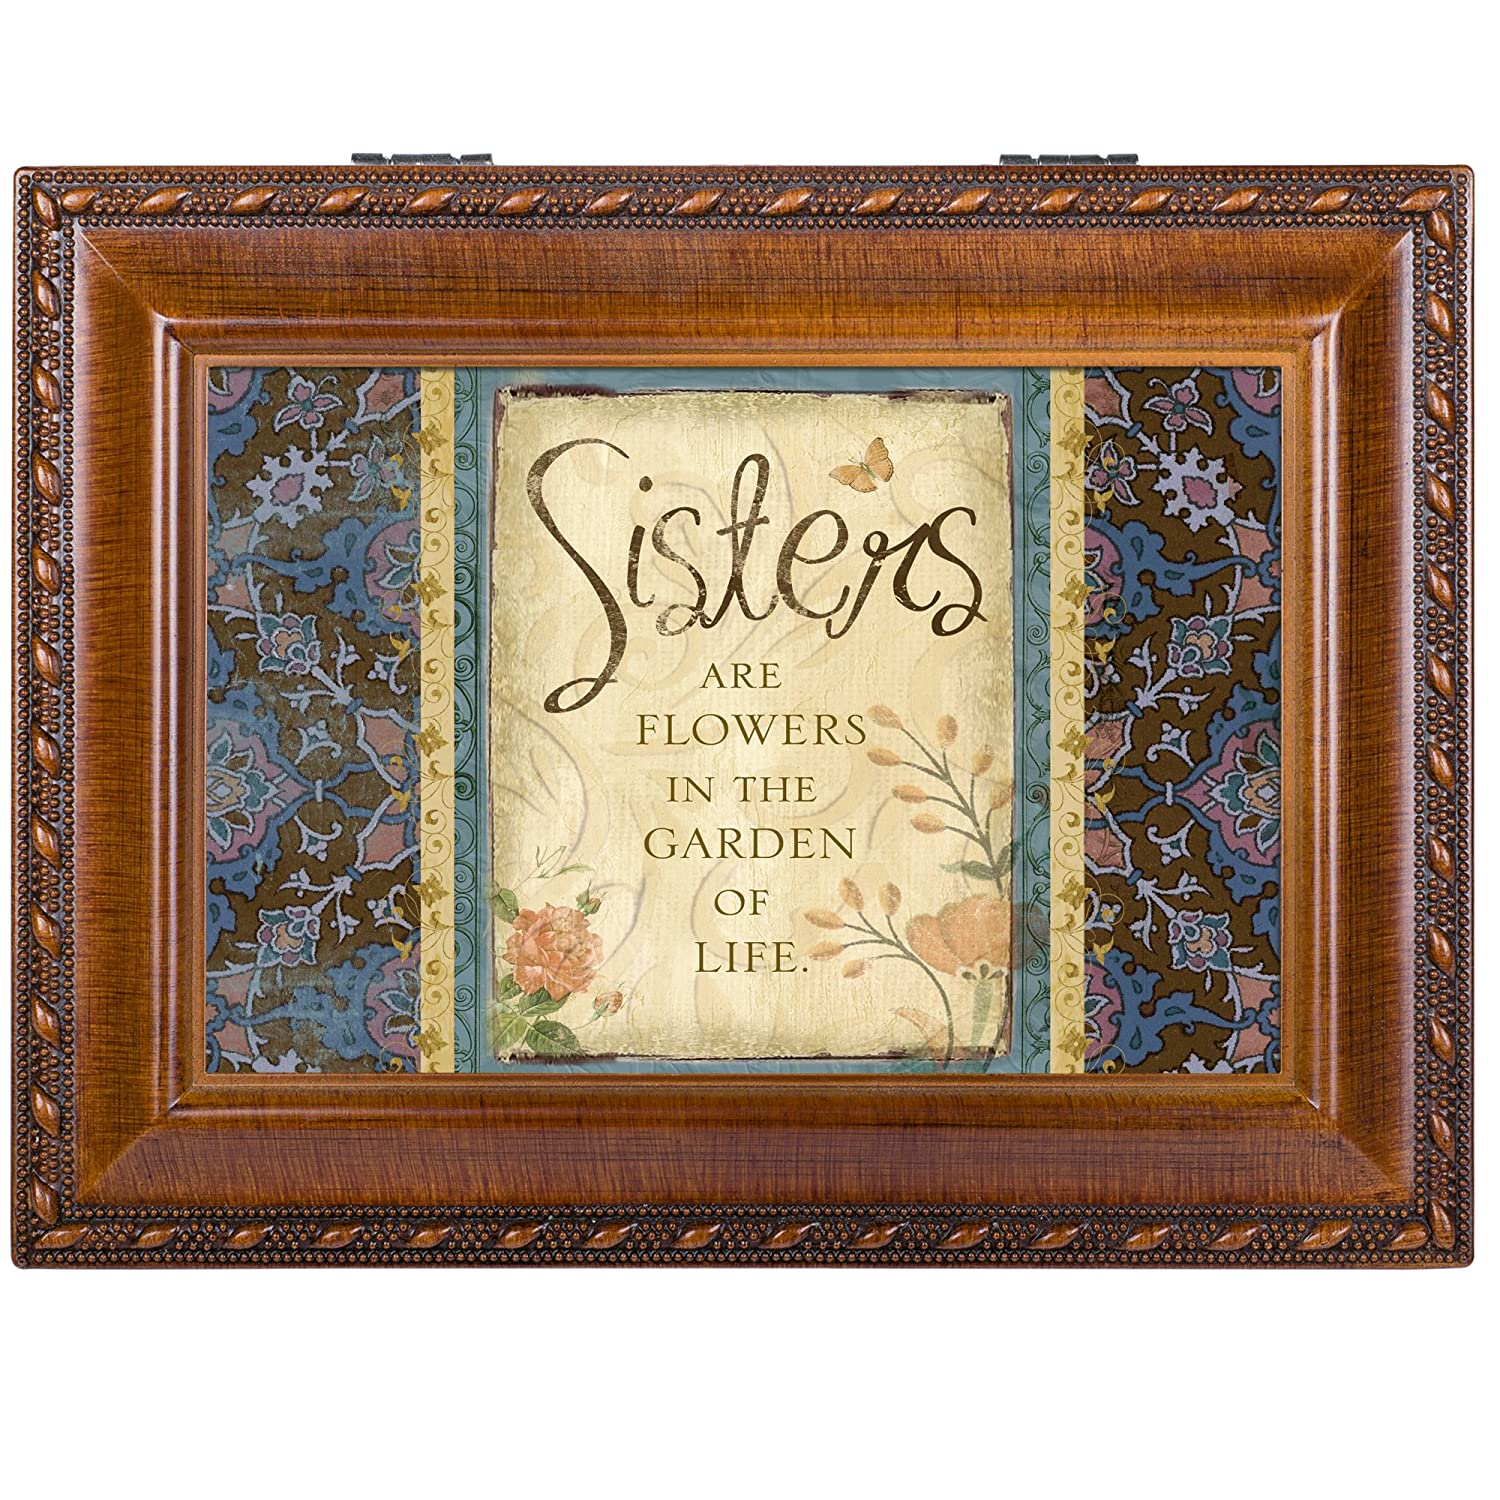 Cottage Garden Sisters Garden Woodgrain Traditional Music Box Plays Thats What Friends Are For